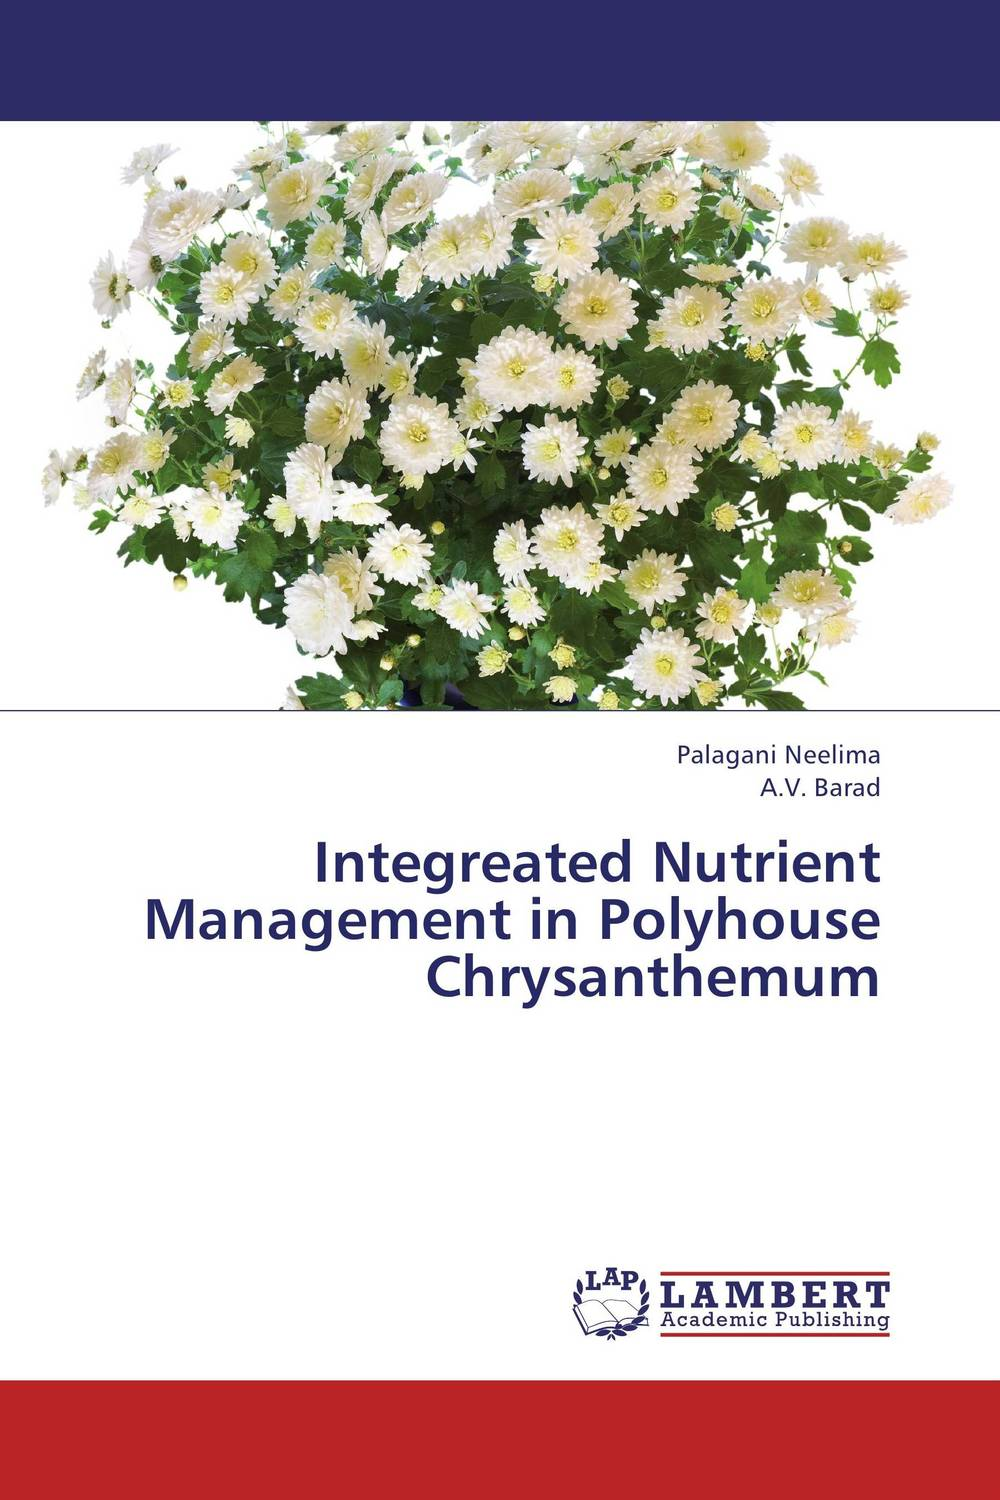 Integreated Nutrient Management in Polyhouse Chrysanthemum 1000pcs long range rfid plastic seal tag alien h3 used for waste bin management and gas jar management